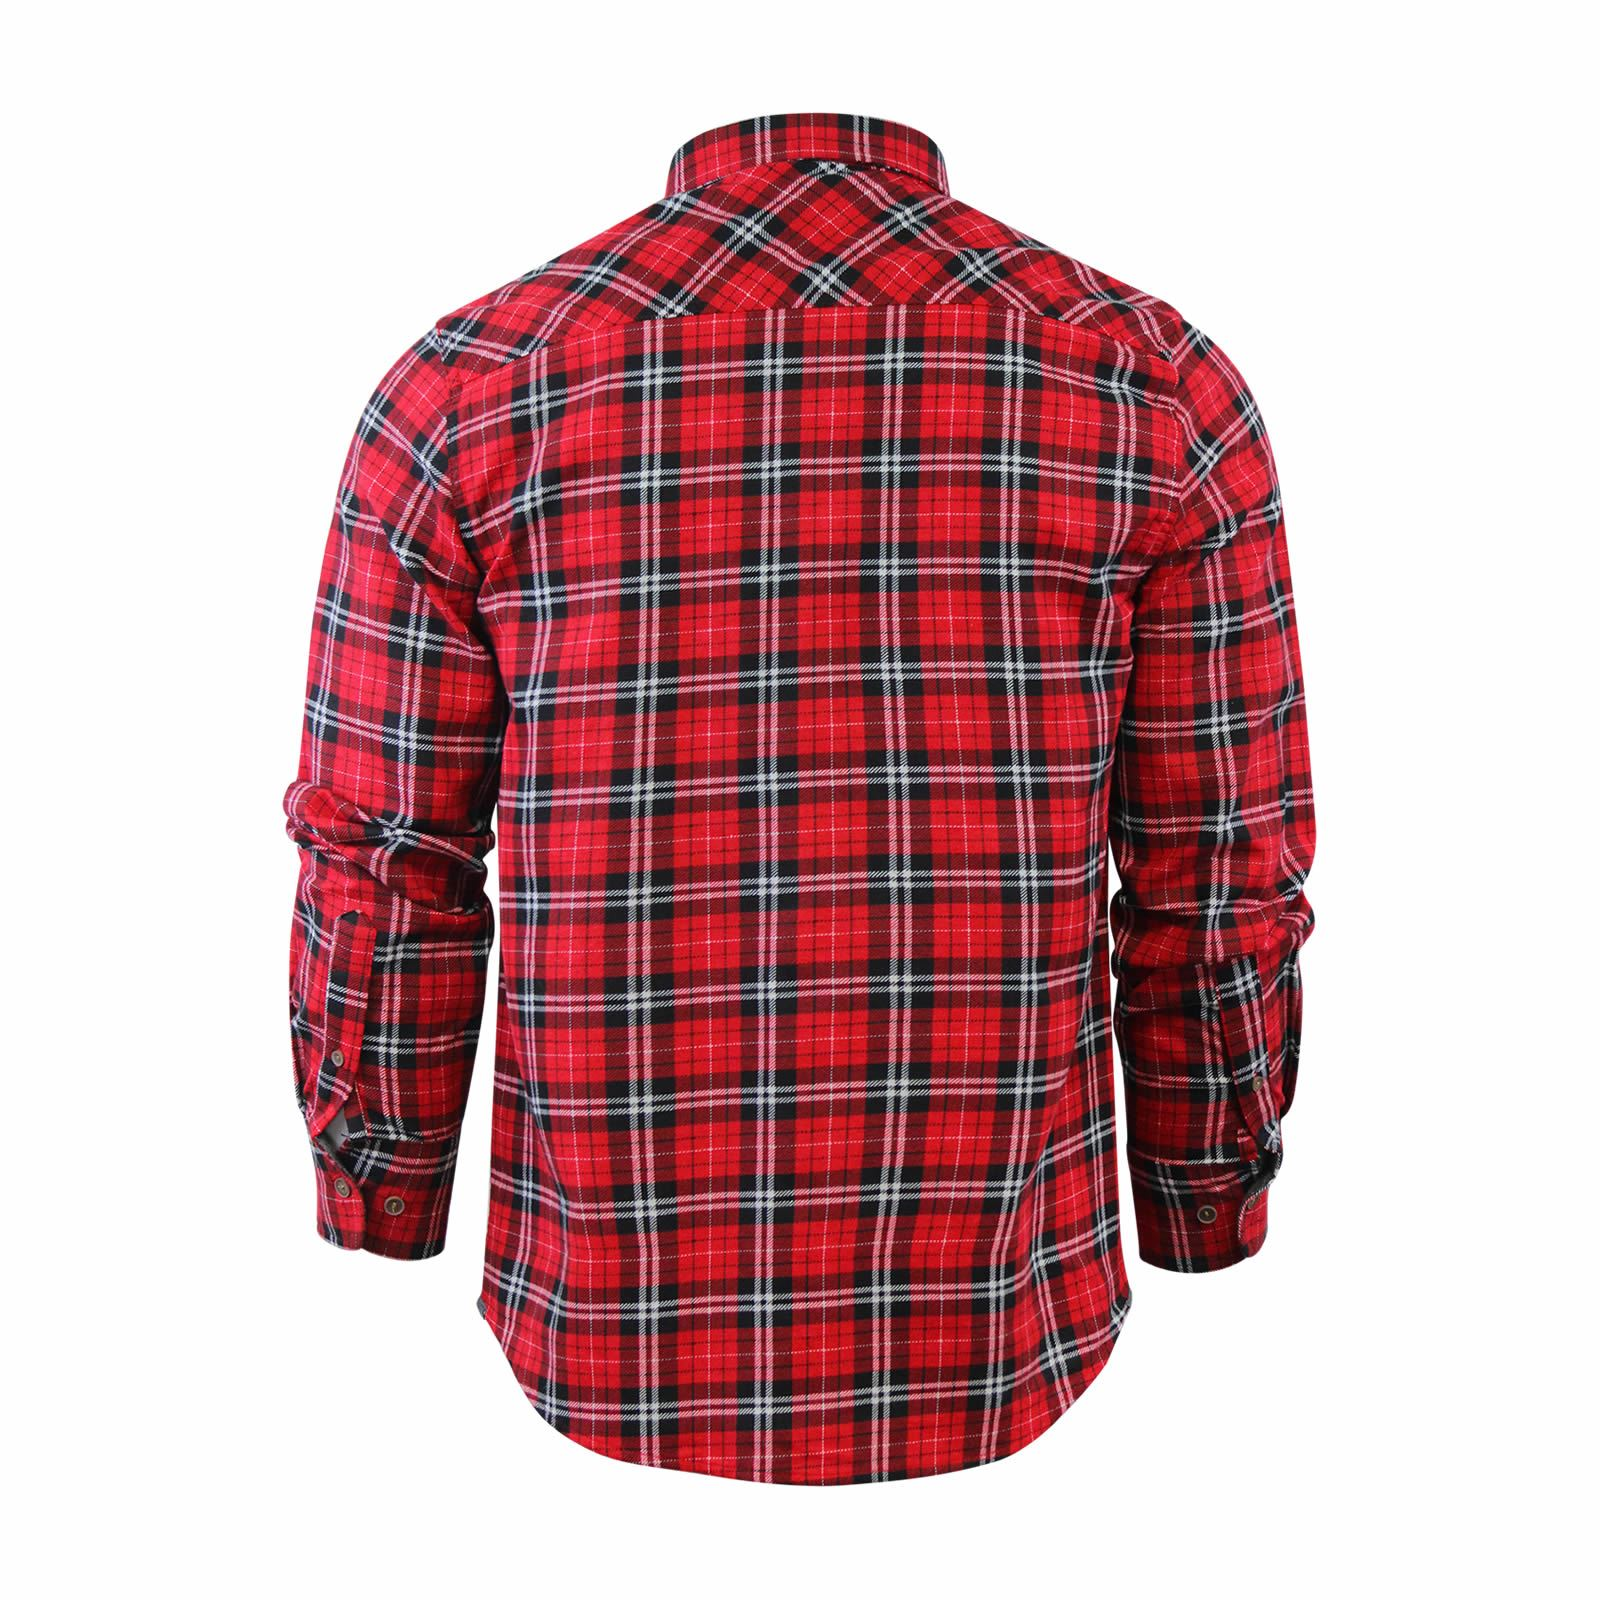 Mens-Check-Shirt-Brave-Soul-Flannel-Brushed-Cotton-Long-Sleeve-Casual-Top thumbnail 83